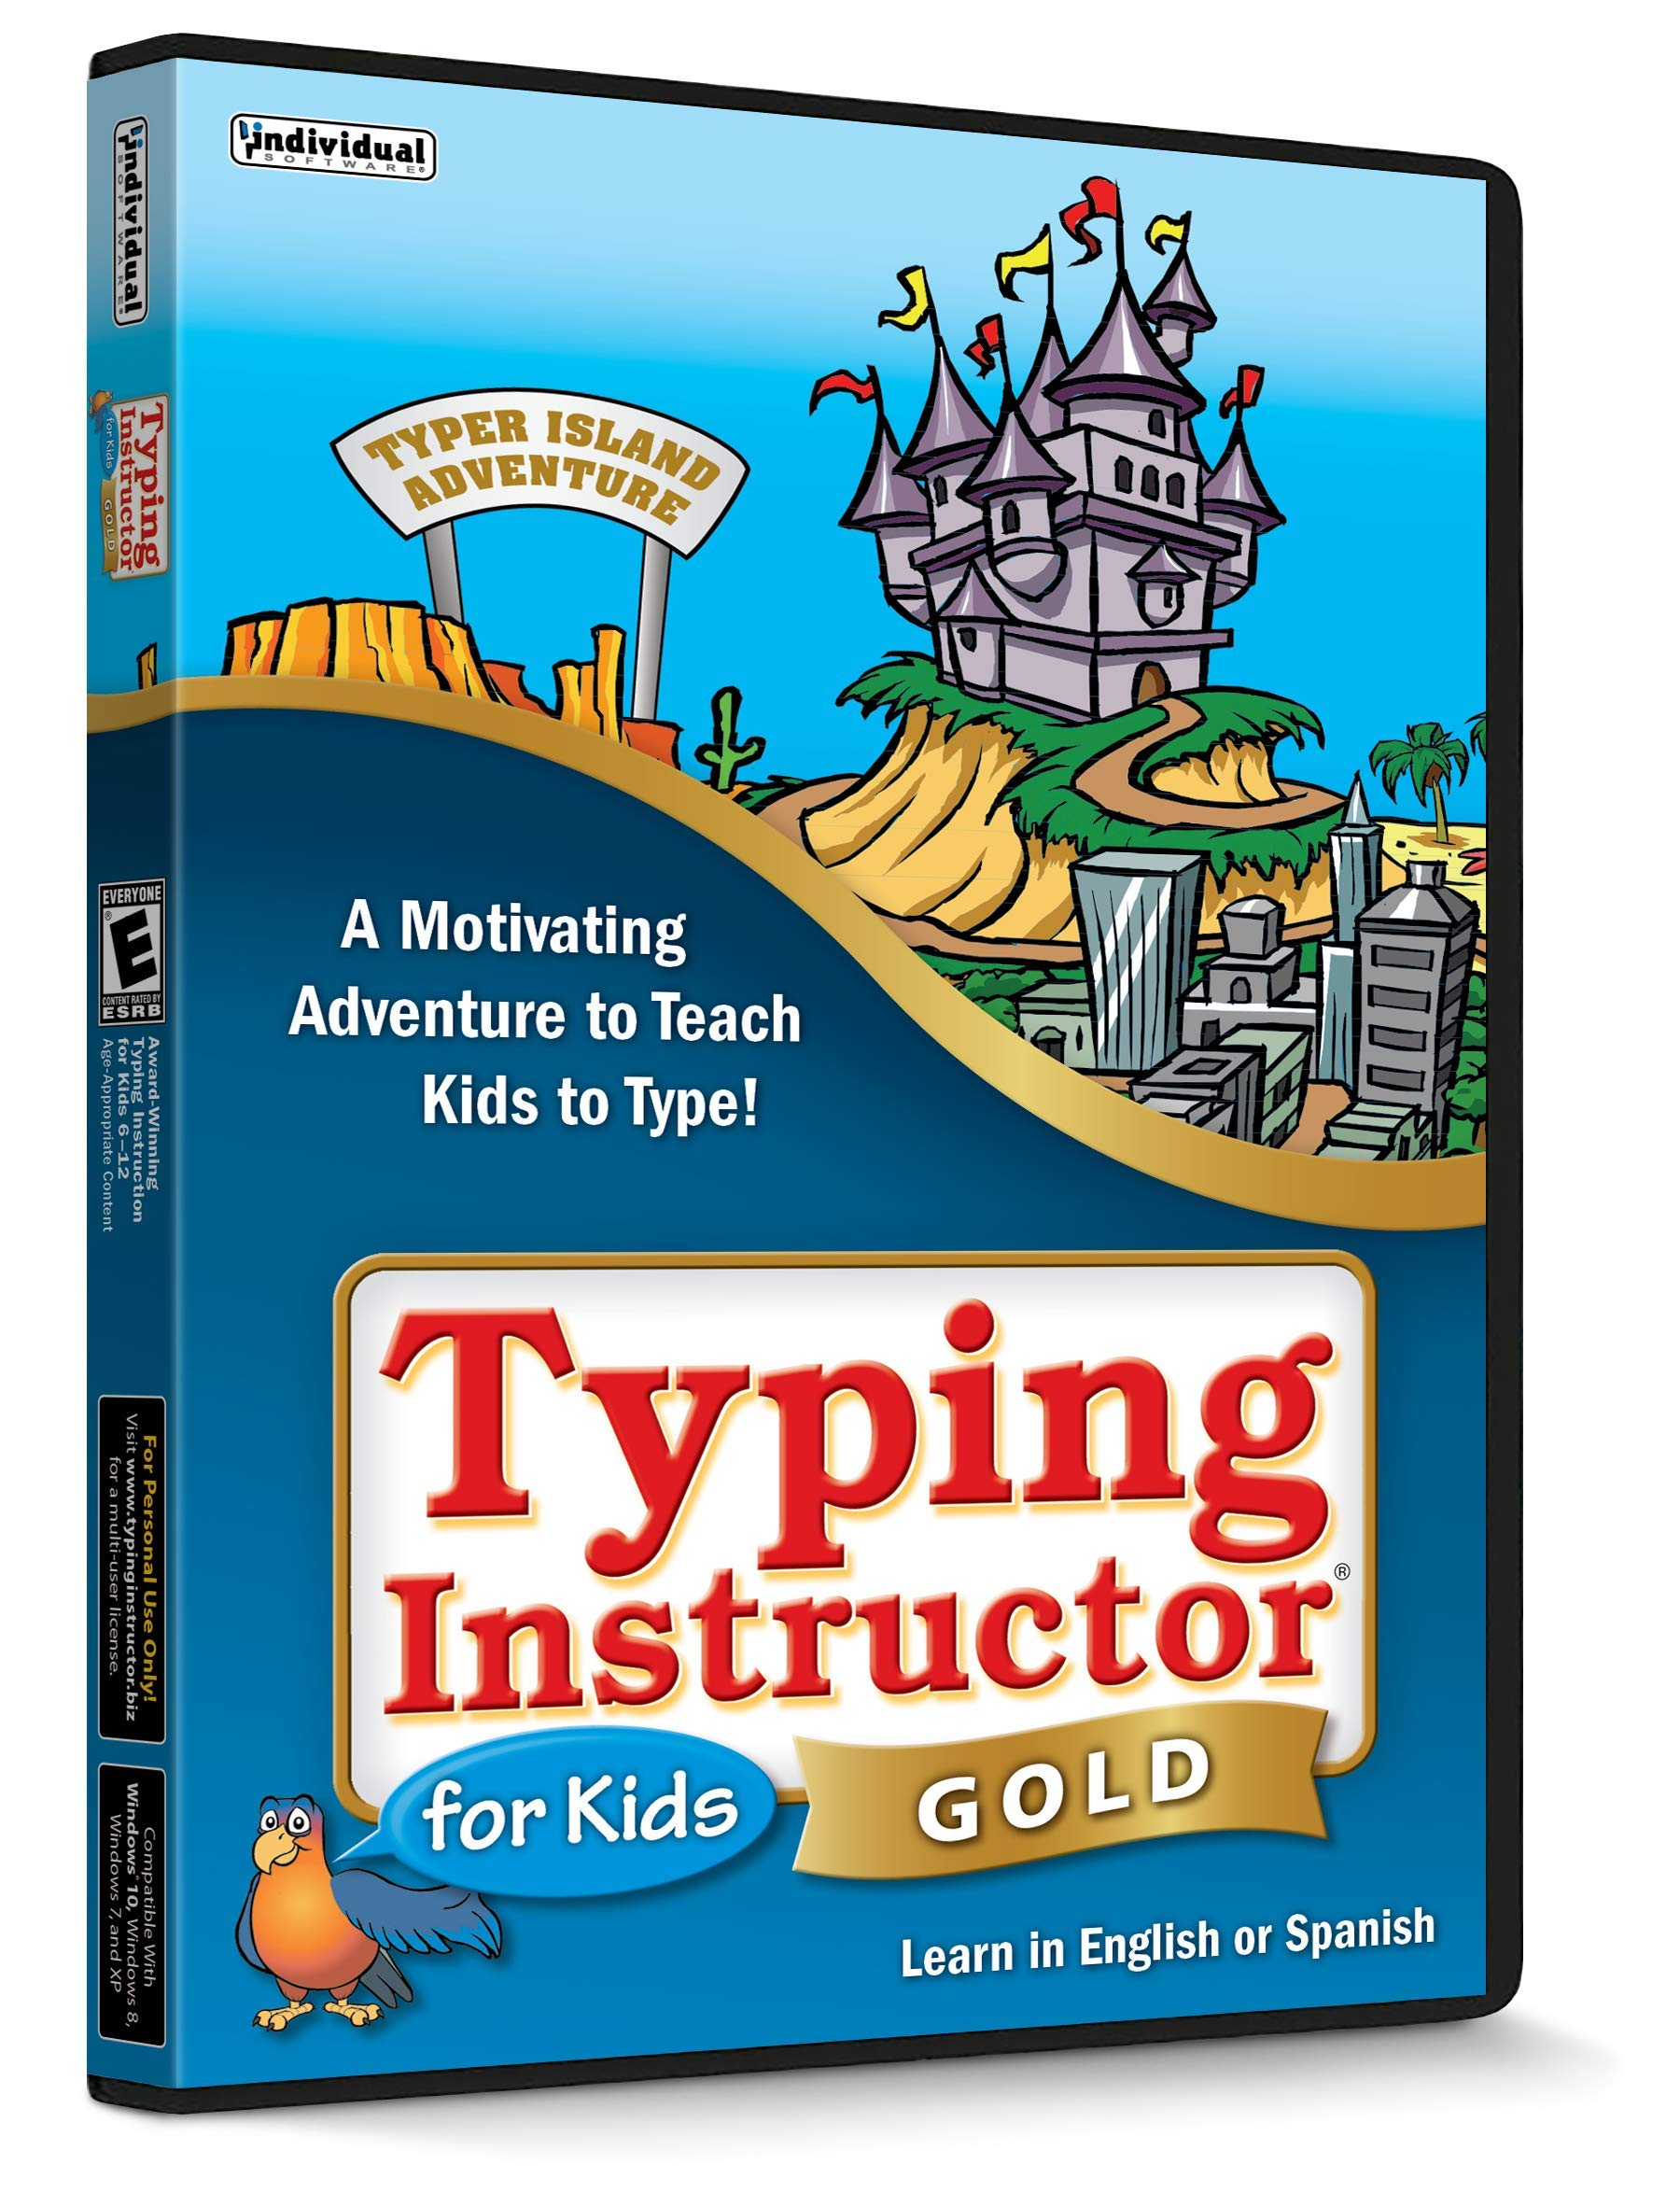 Typing Instructor for Kids Gold by Individual Software